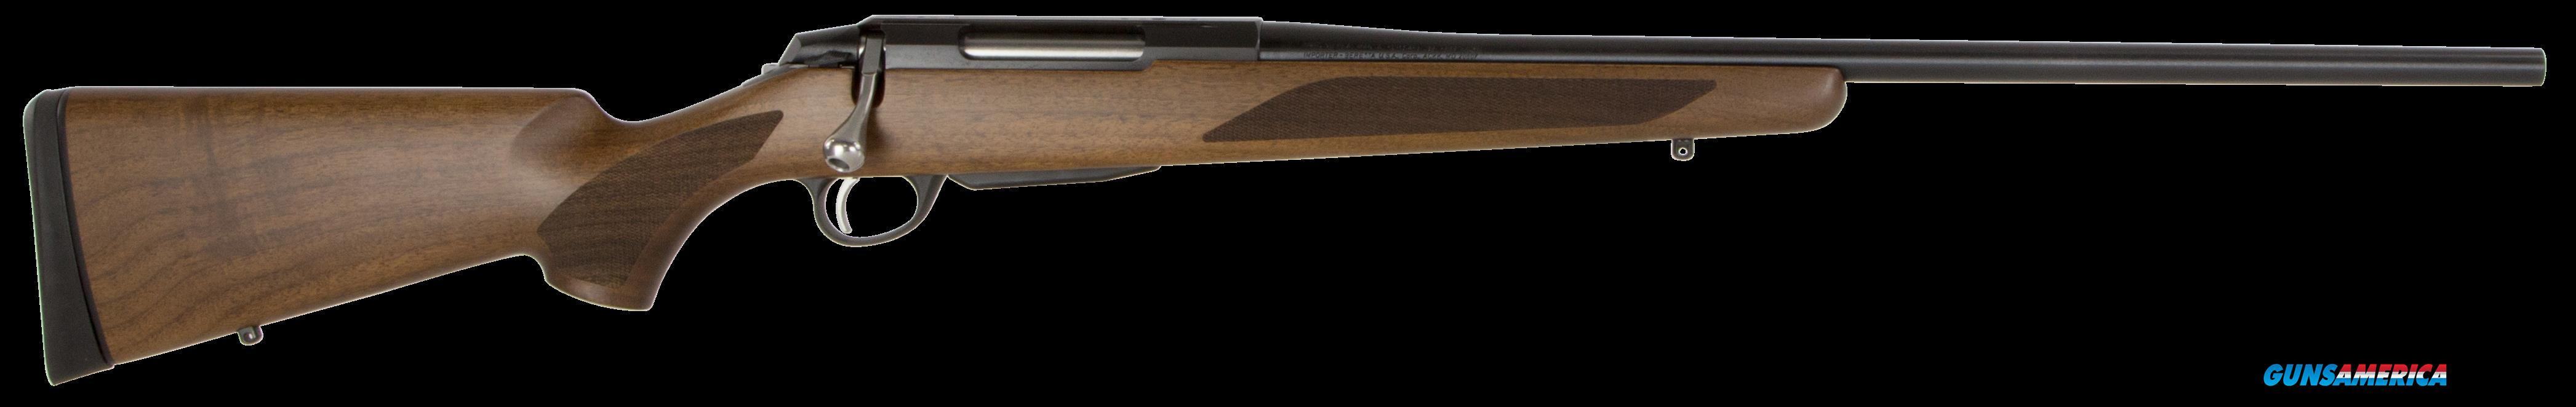 "Tikka T3 JRTXA351 T3x Hunter Bolt 6.5x55 Swedish 22.4"" 3+1 Wood Stk Blued  Guns > Rifles > Tikka Rifles > T3"